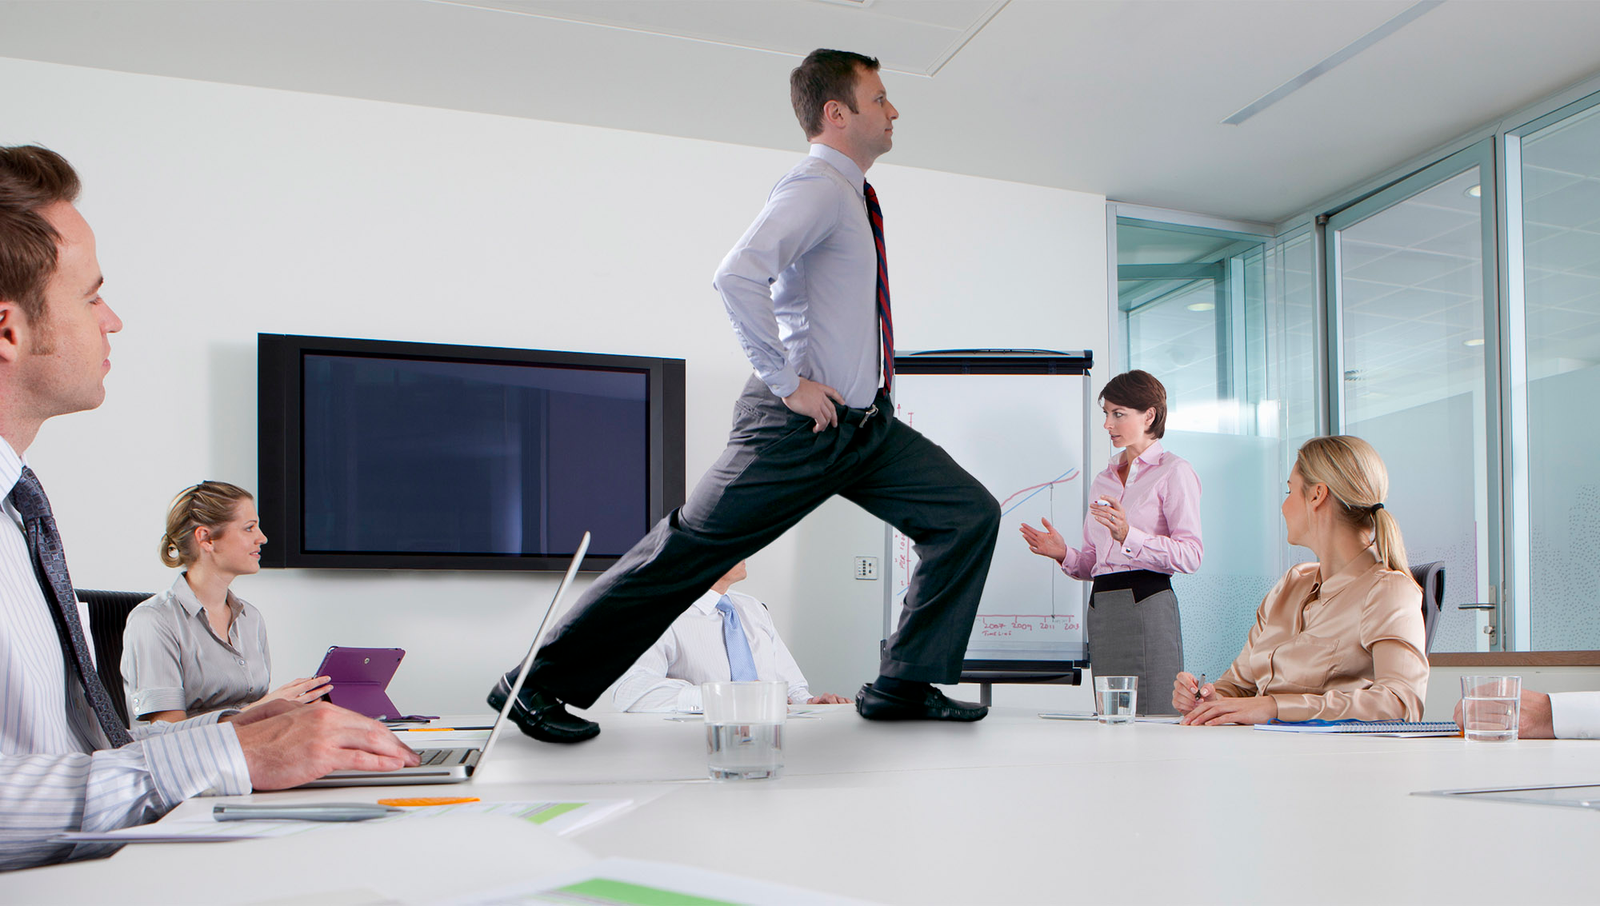 Finding time in your schedule to work out can be difficult, which is why performing a few easy exercises at the office can be the perfect way for a busy person to stay in shape. For example, sneak in a low-impact training session during a weekly budget meeting by doing a few sets of lunges.